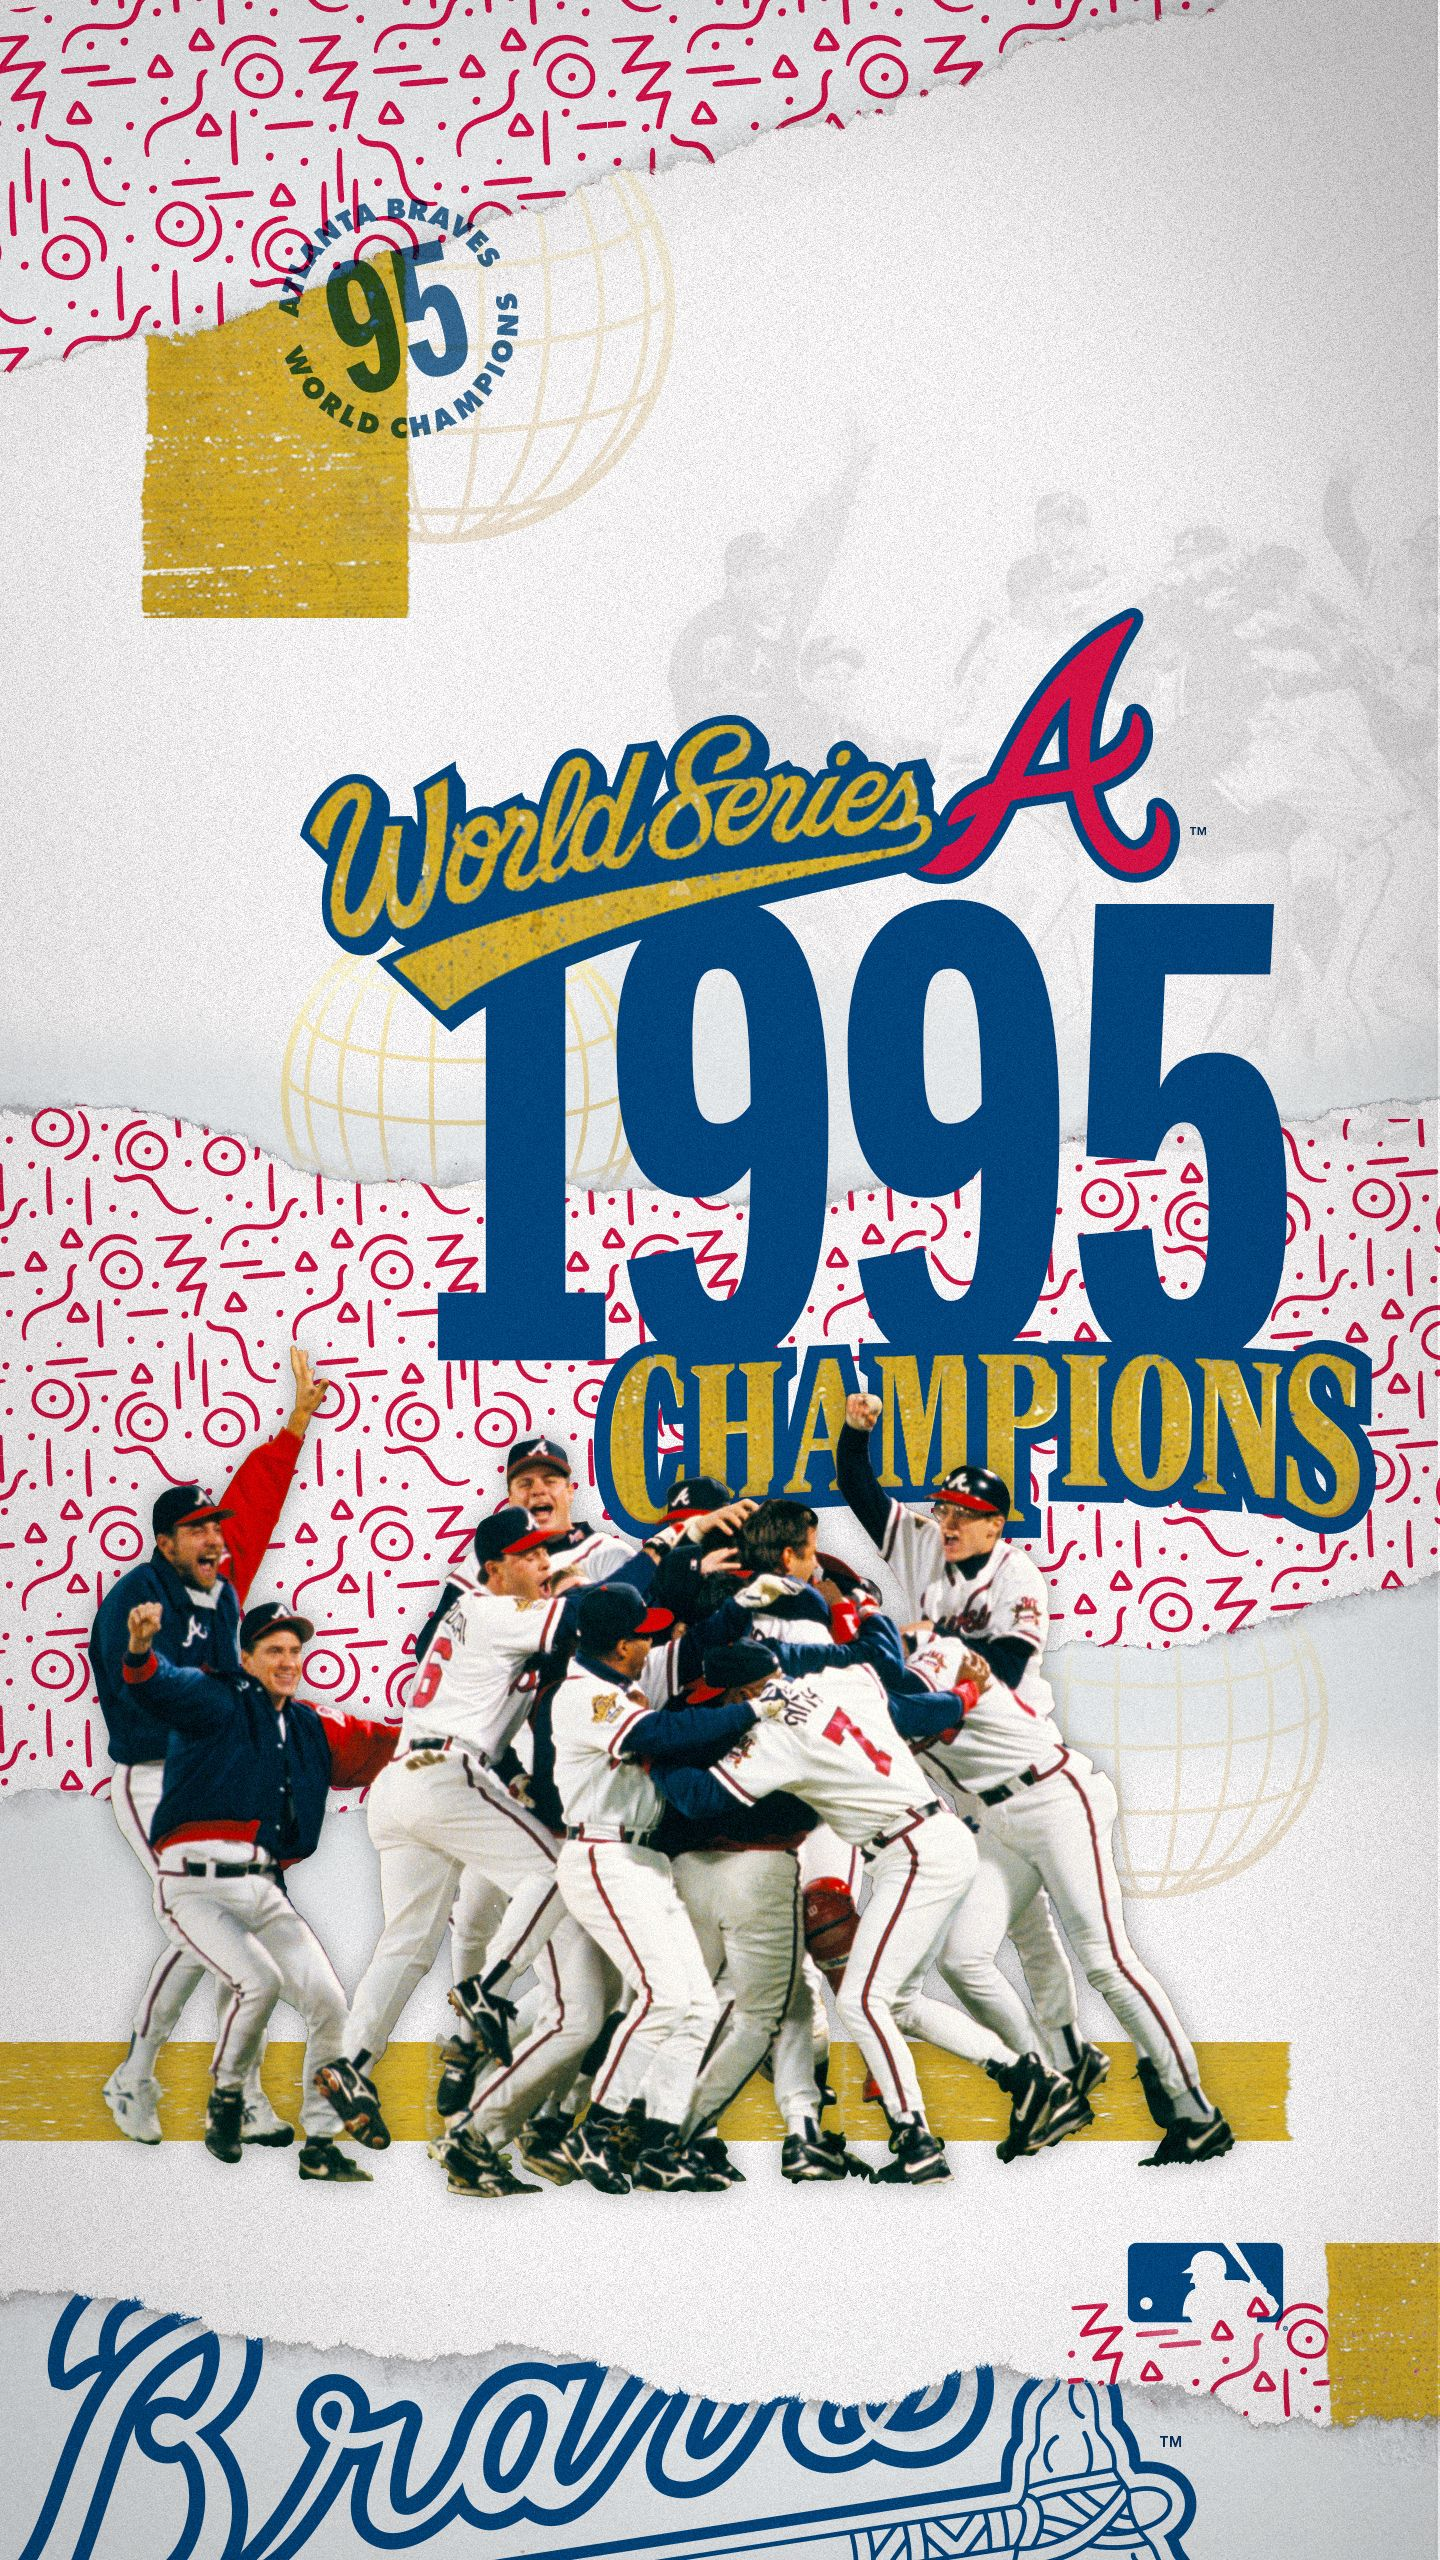 1995 World Series Champs Atlanta Braves In 2020 Atlanta Braves World Series Atlanta Braves Braves